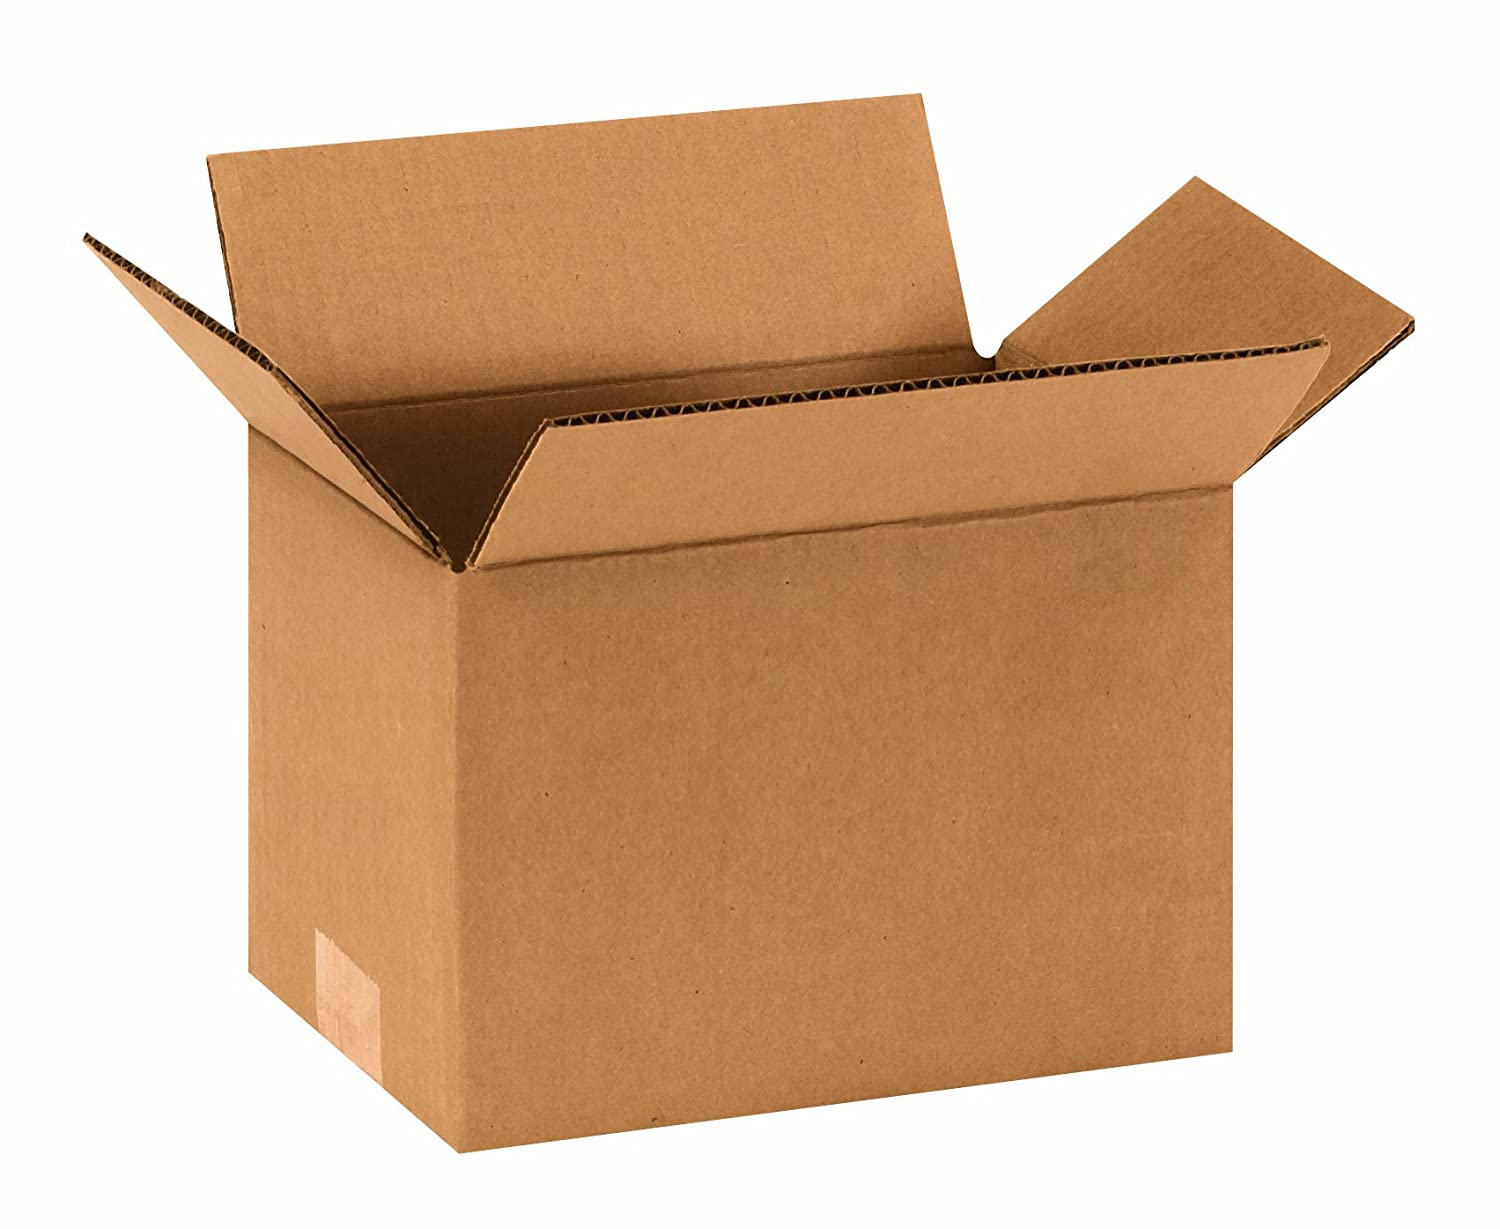 EcoSwift 40 10x7x4 Corrugated Cardboard Packing Boxes Mailing Moving Shipping Box Cartons